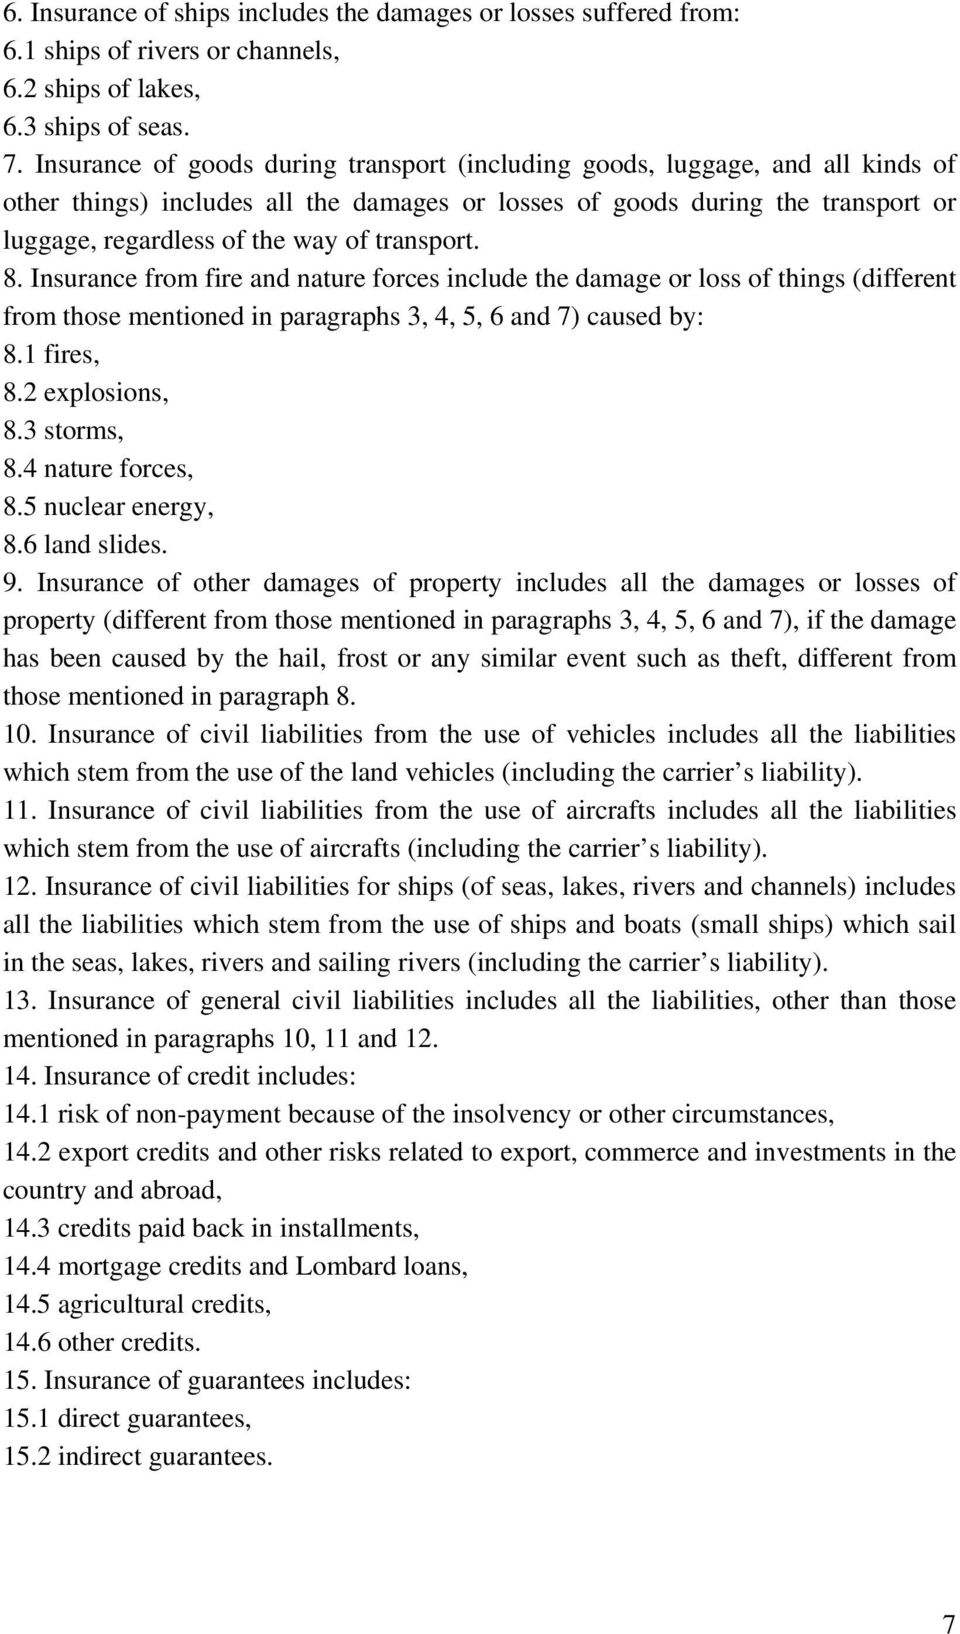 transport. 8. Insurance from fire and nature forces include the damage or loss of things (different from those mentioned in paragraphs 3, 4, 5, 6 and 7) caused by: 8.1 fires, 8.2 explosions, 8.